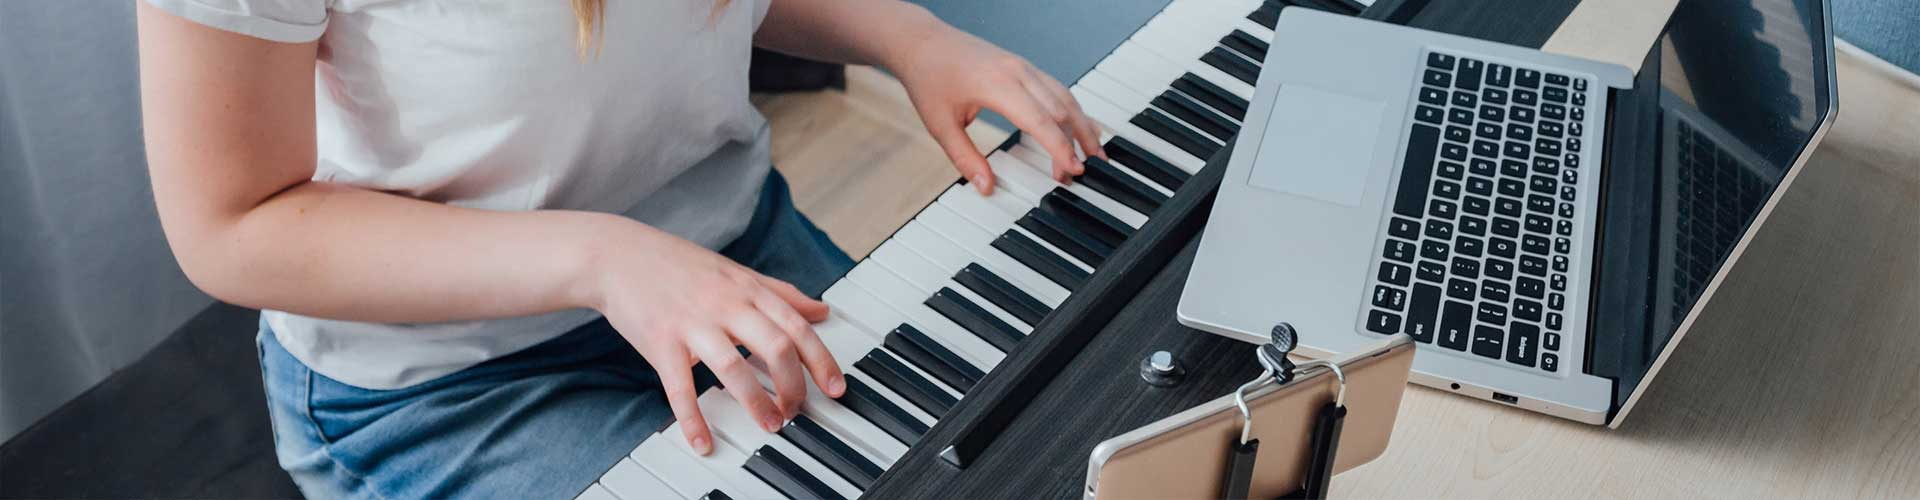 Teenager leaning piano